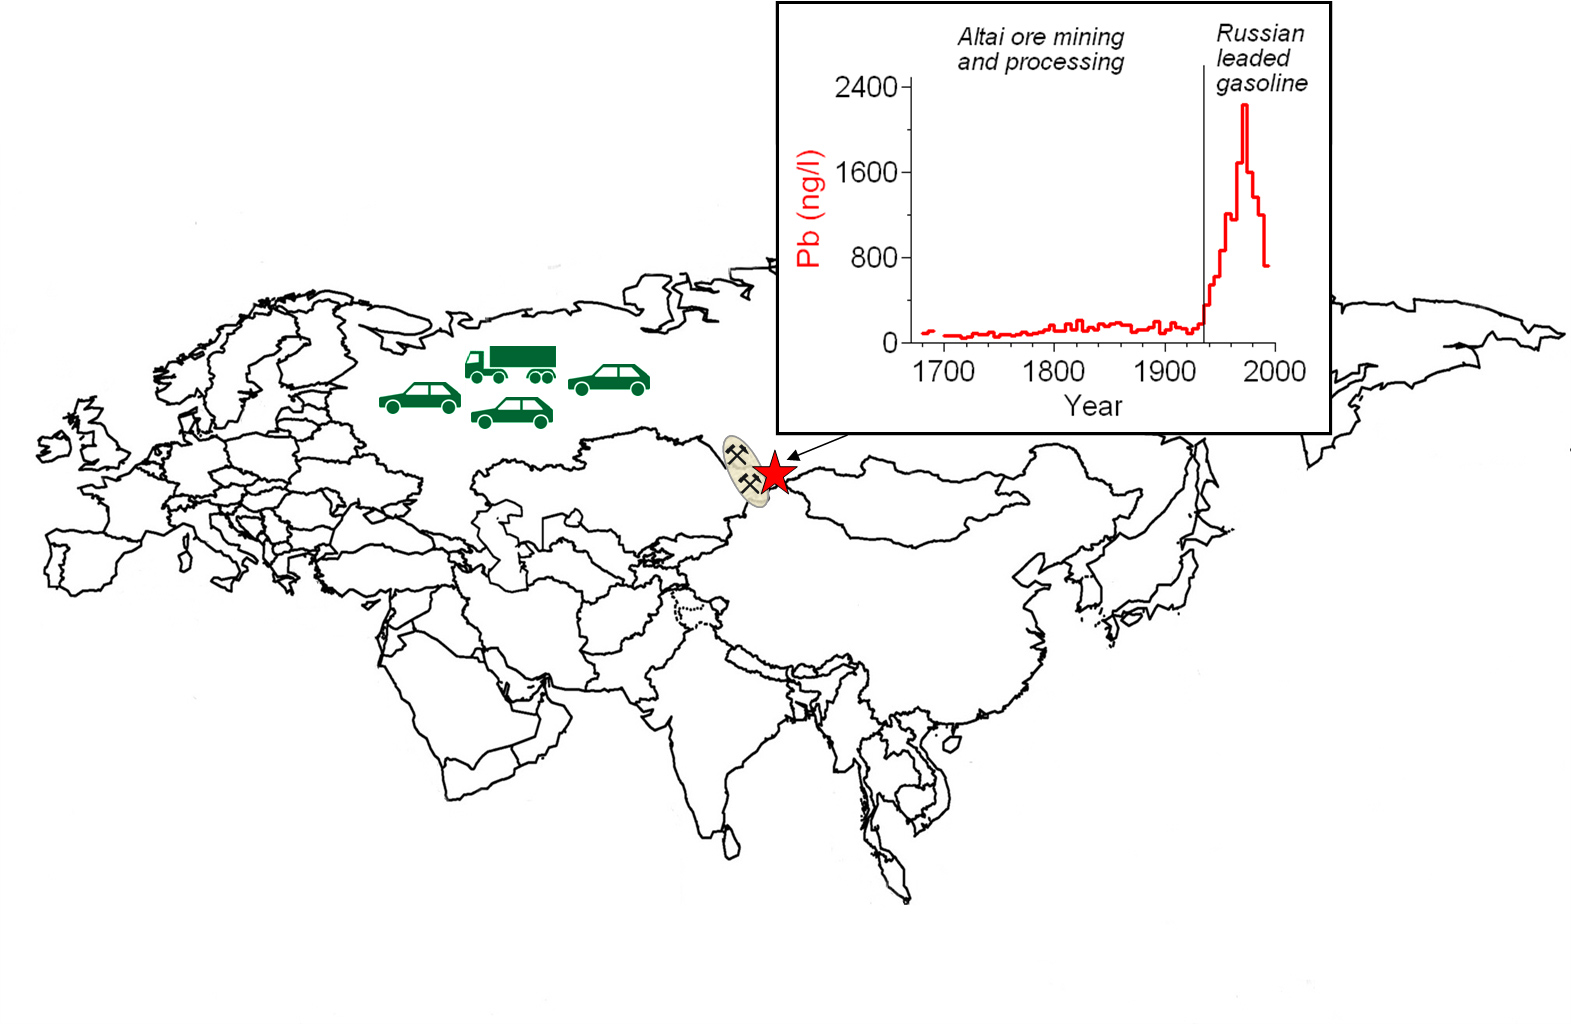 Atmospheric lead concentrations in the period 1680-1995 reconstructed using an ice core from the Belukha glacier in the Siberian Altai. While lead was mainly emitted into the atmosphere from mining in the Altai for the production of Russian coins in the period 1680-1935, Russian leaded gasoline was the major lead source since the 1930s.